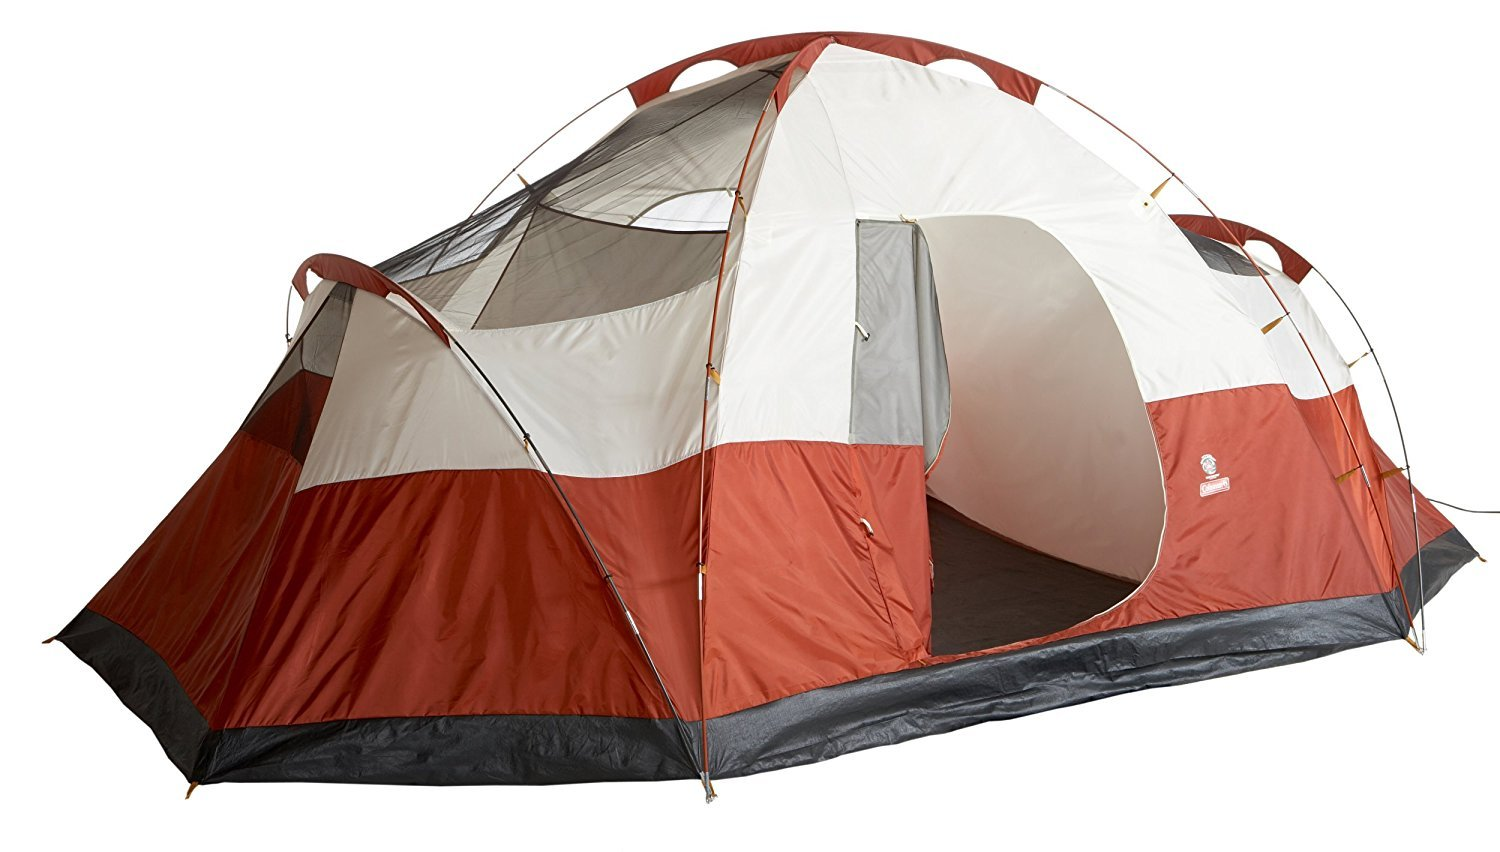 Buying a Tent for Camping